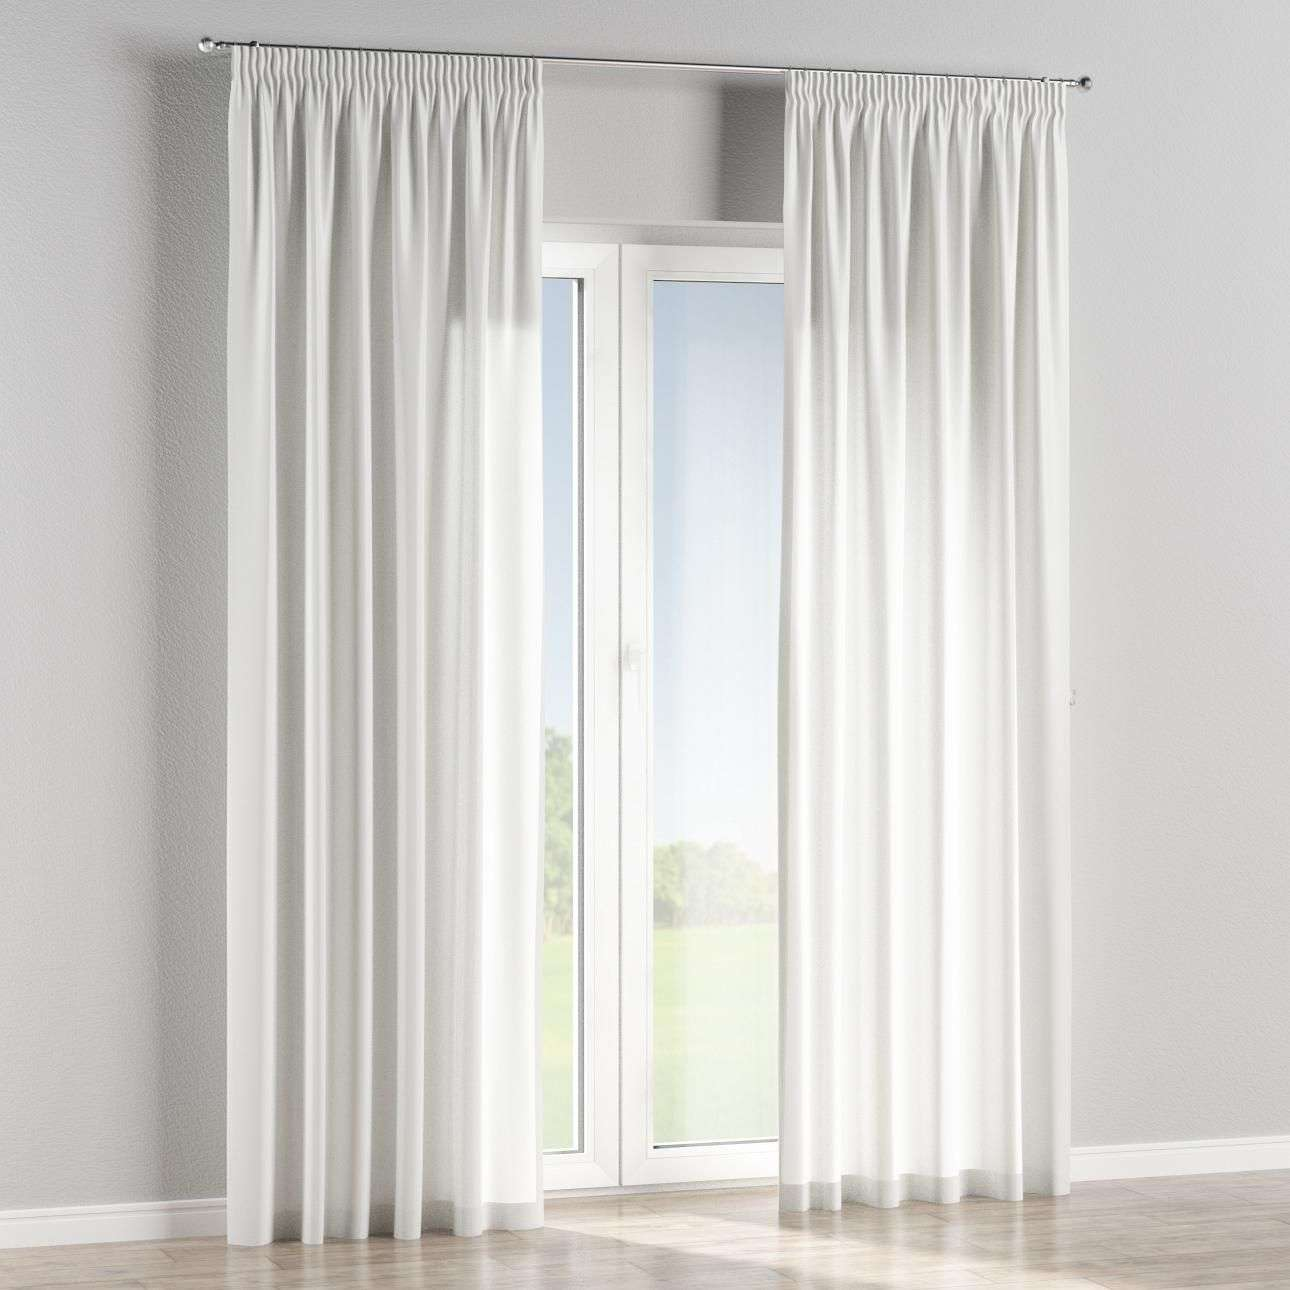 Pencil pleat lined curtains in collection Mirella, fabric: 141-11